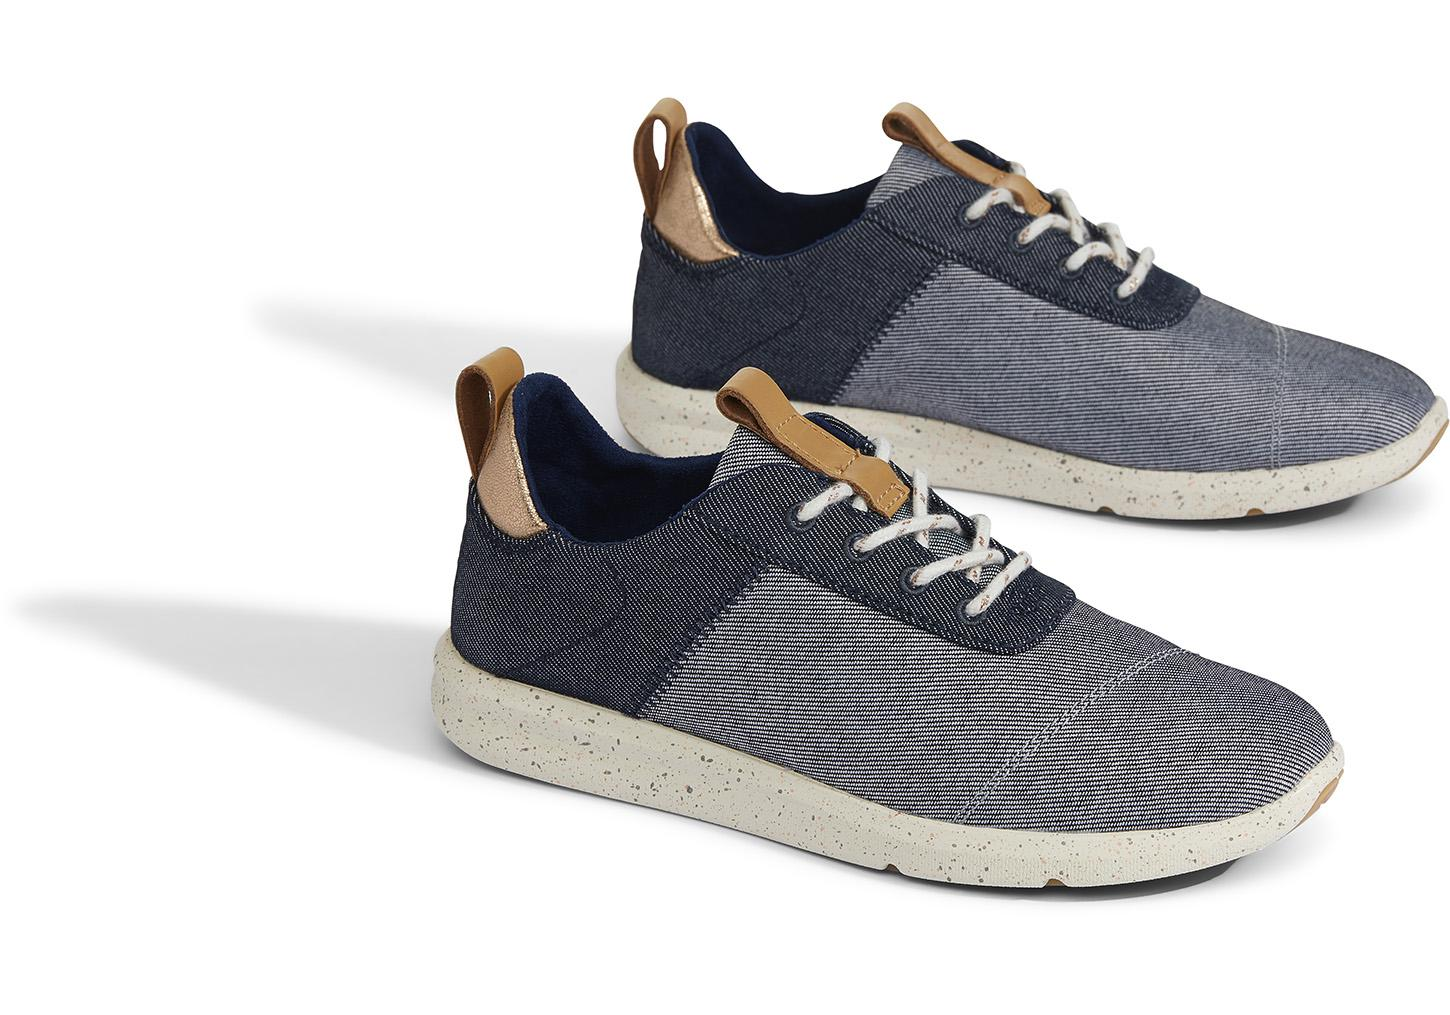 48070d564ce TOMS - Blue Navy Denim Cabrillo Women s Sneakers - Lyst. View fullscreen